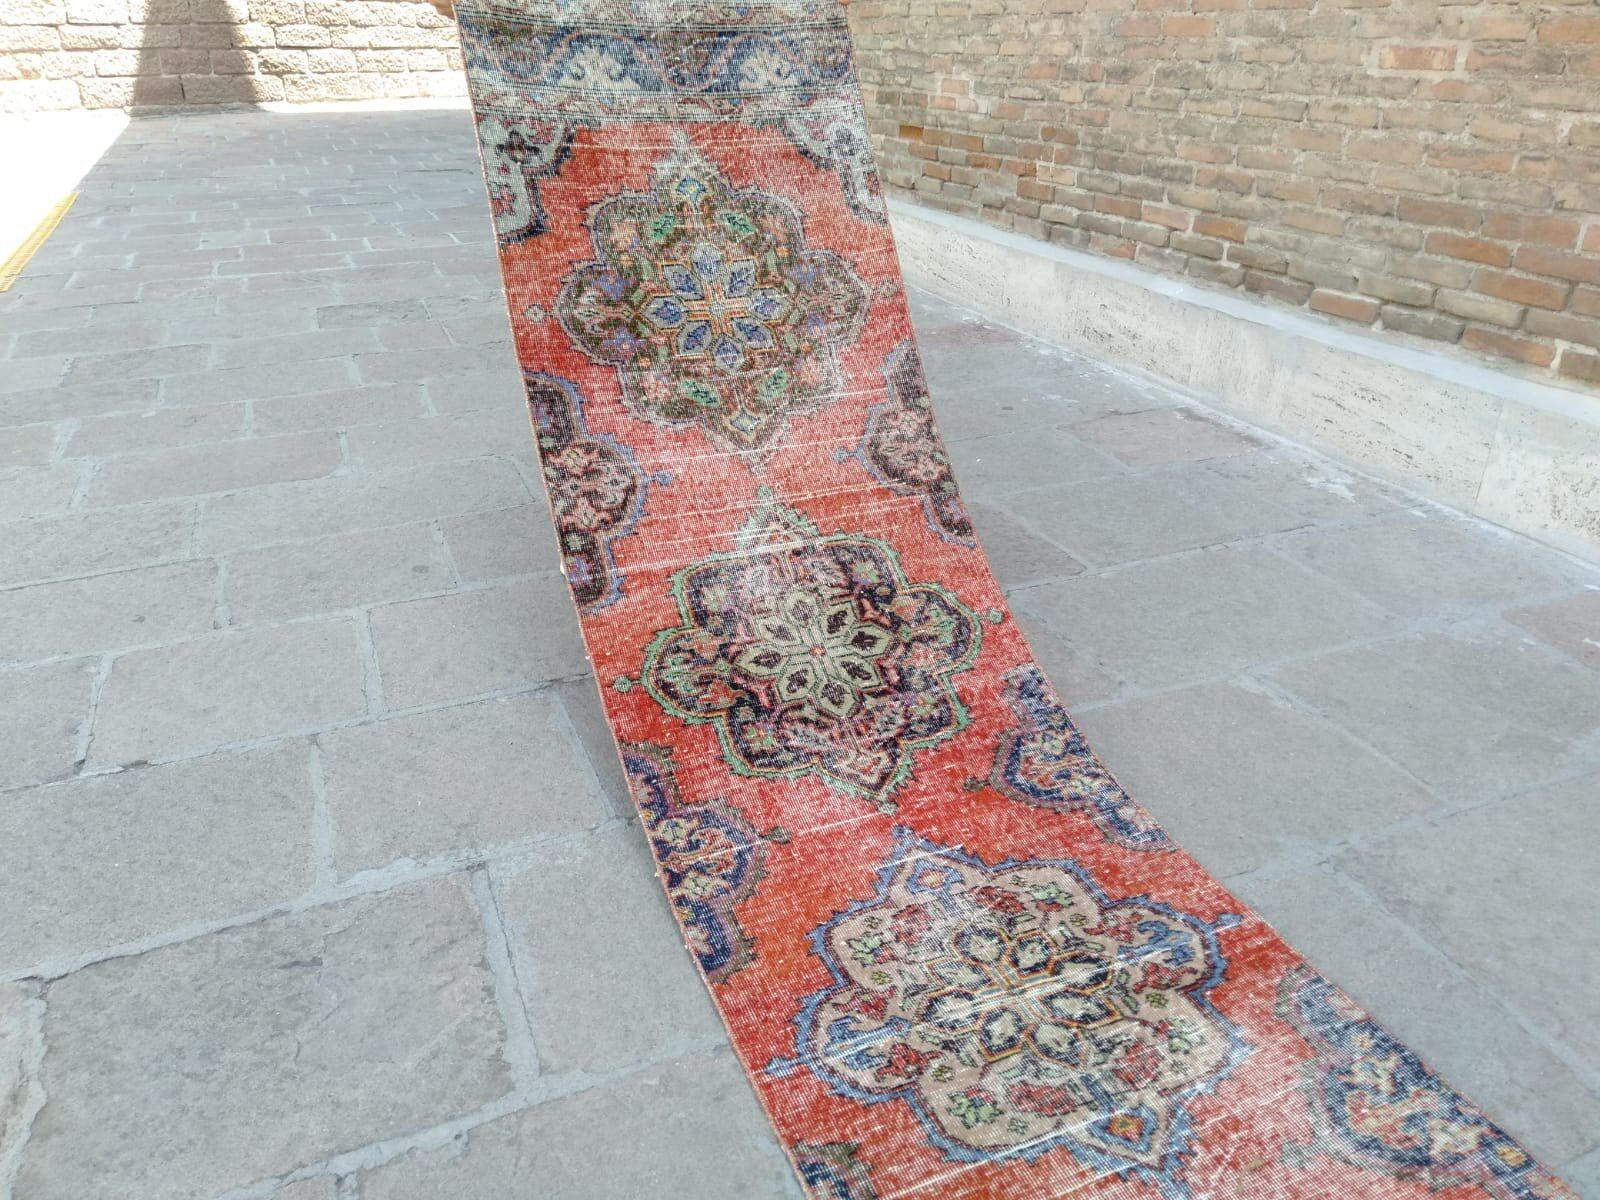 3 X 12 Turkish Carpet Runner Fast And Free Shipping Vintage Rug Runner Oushak Hallway Rug Runner 2 X 12 Runner 2 4 X 12 Ft Runners In 2020 Turkish Carpet Hallway Rug Carpet Runner